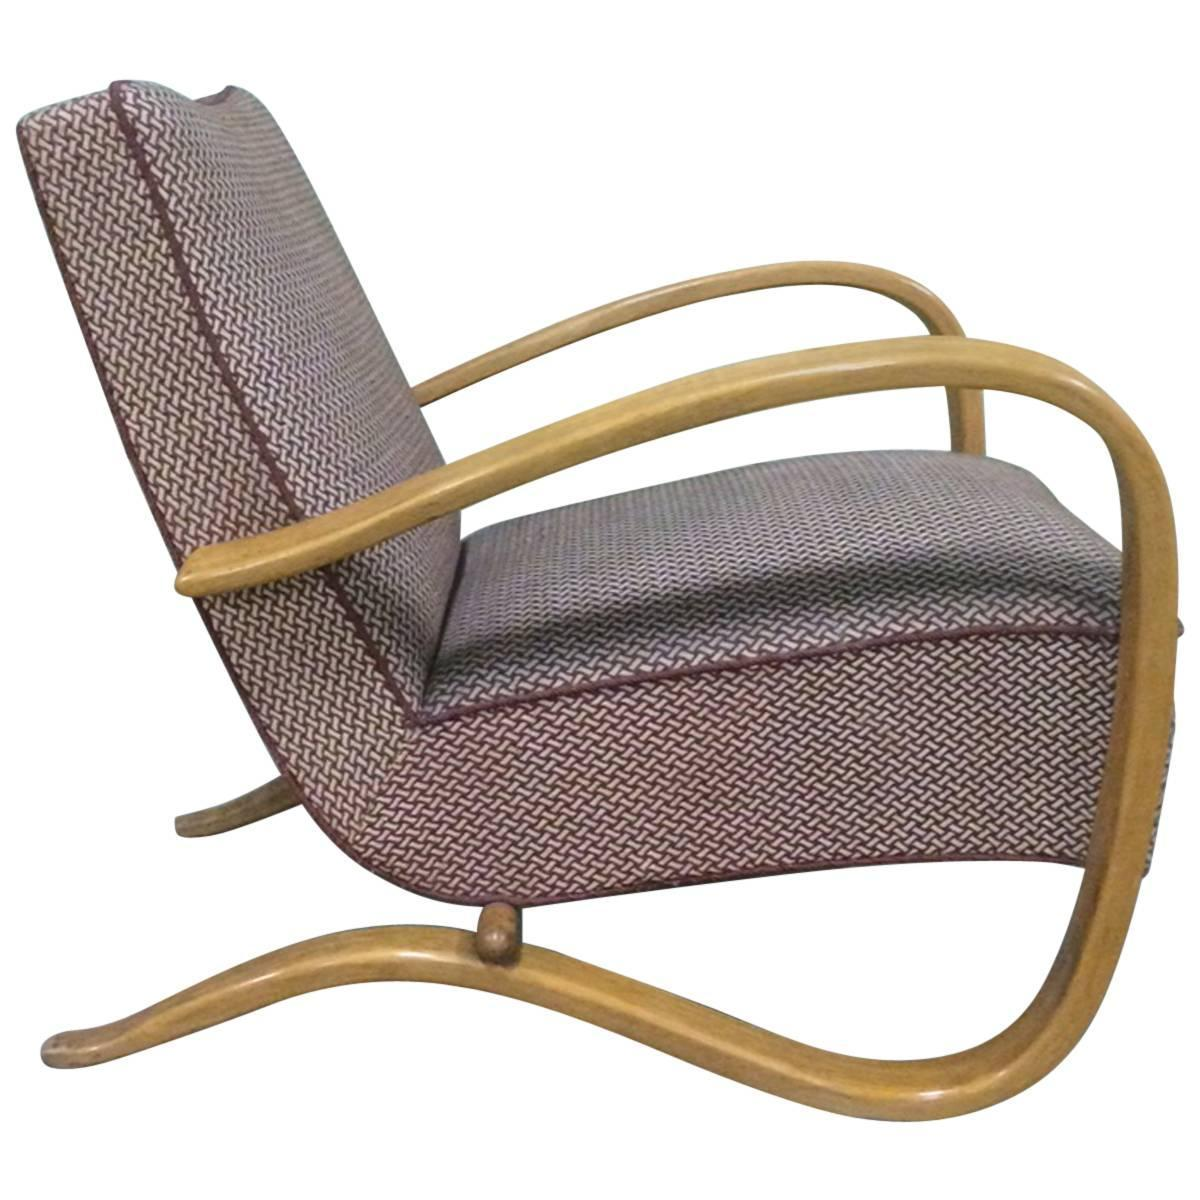 single lounge chair by halabala for sale at 1stdibs